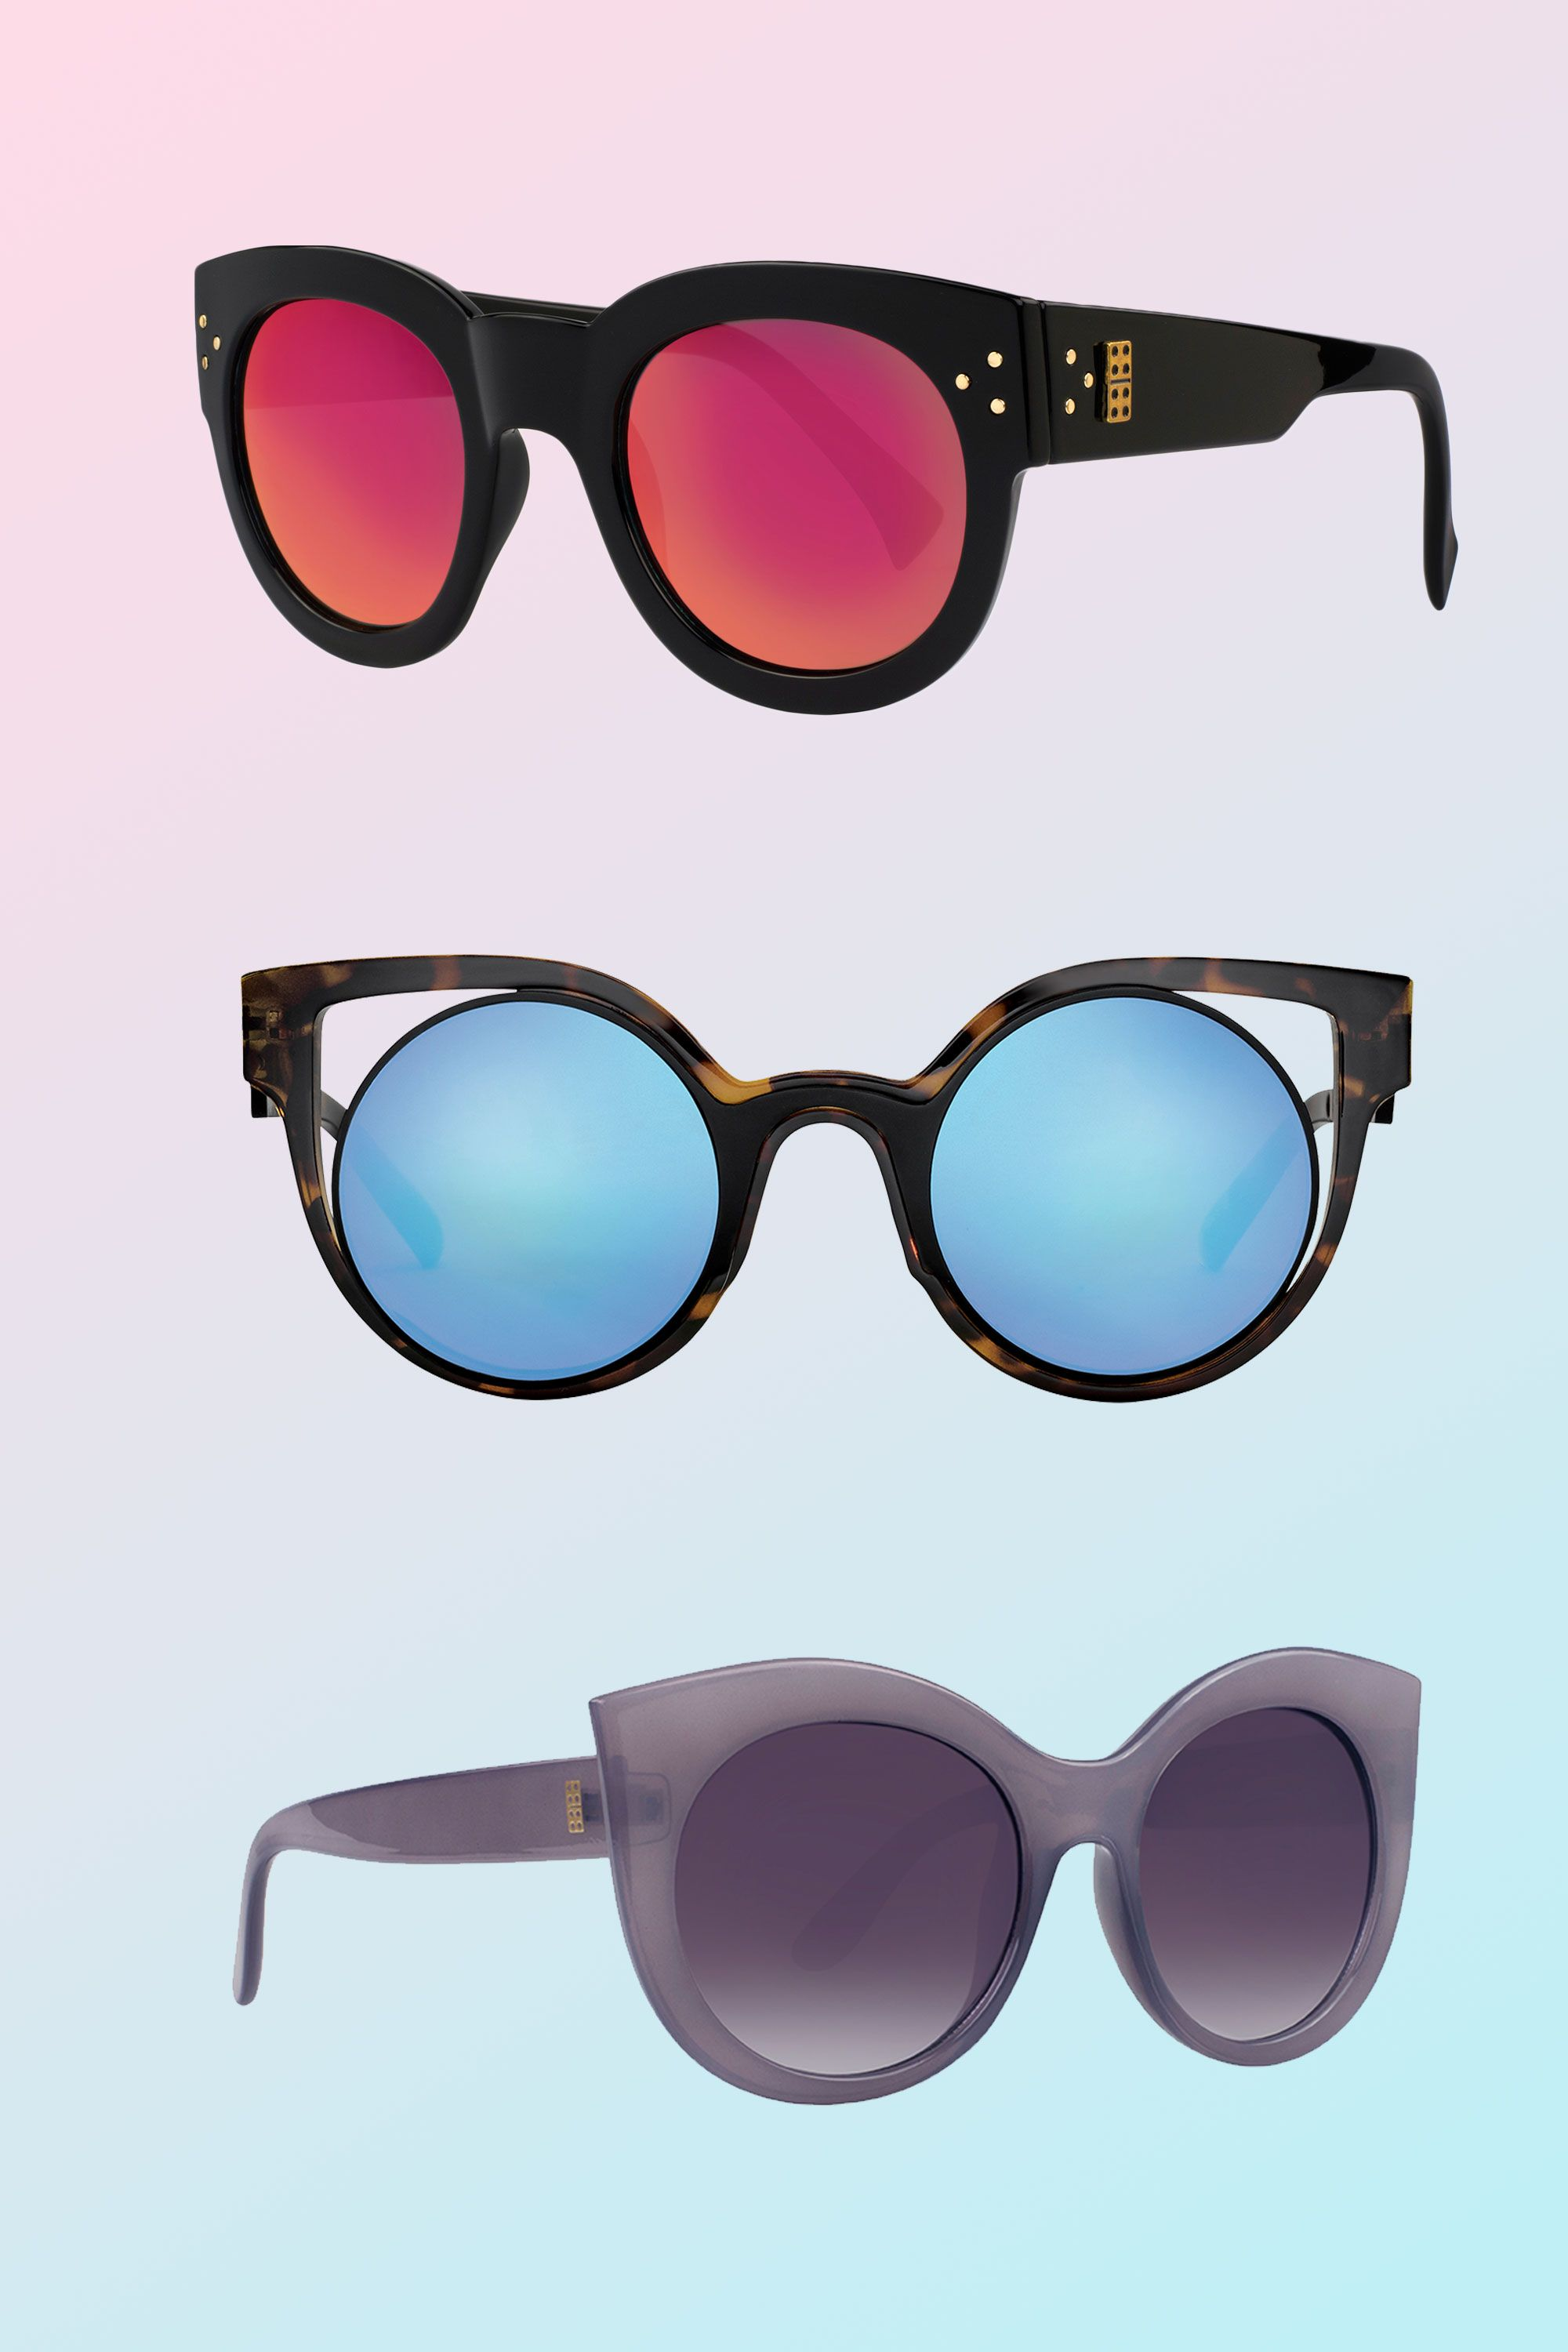 Gifts for the fashionista - Foster Grant sunglasses